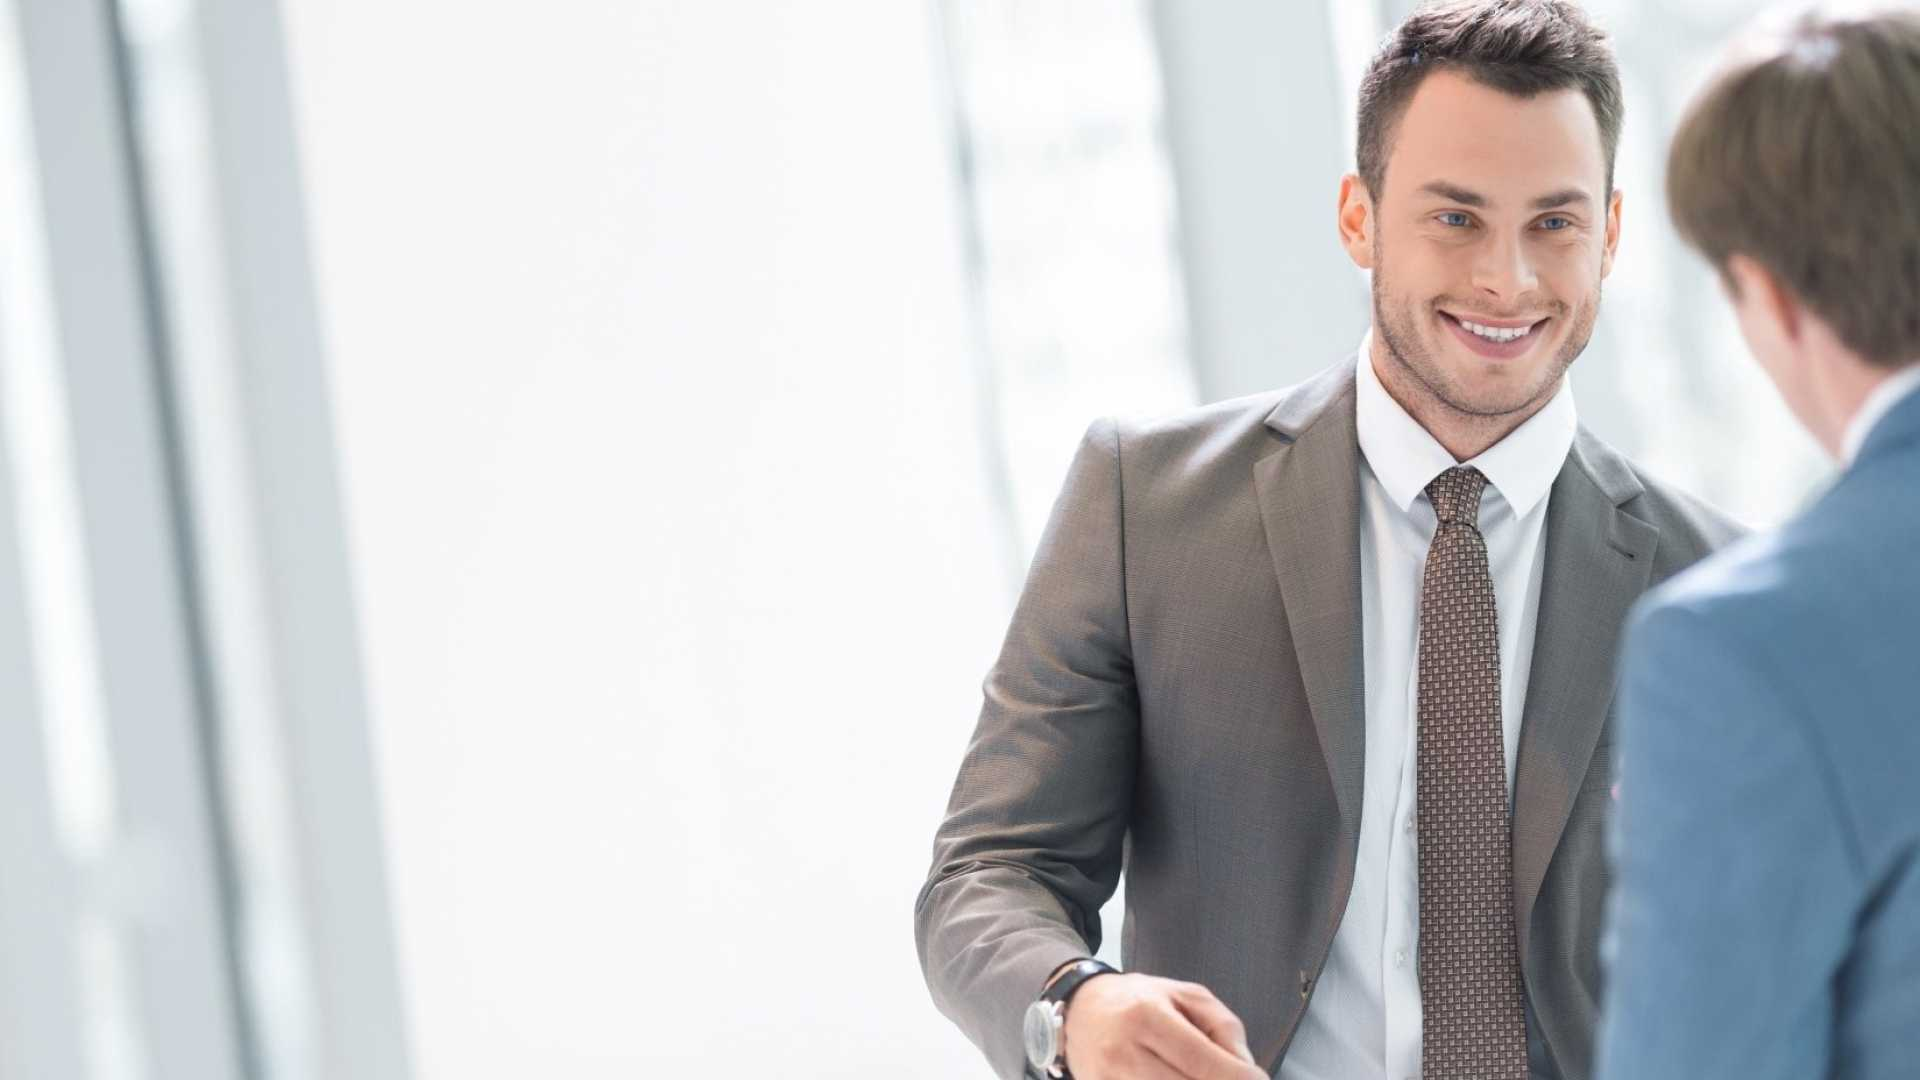 Make the Best First Impression by Communicating This One Surprising Thing About Your Success